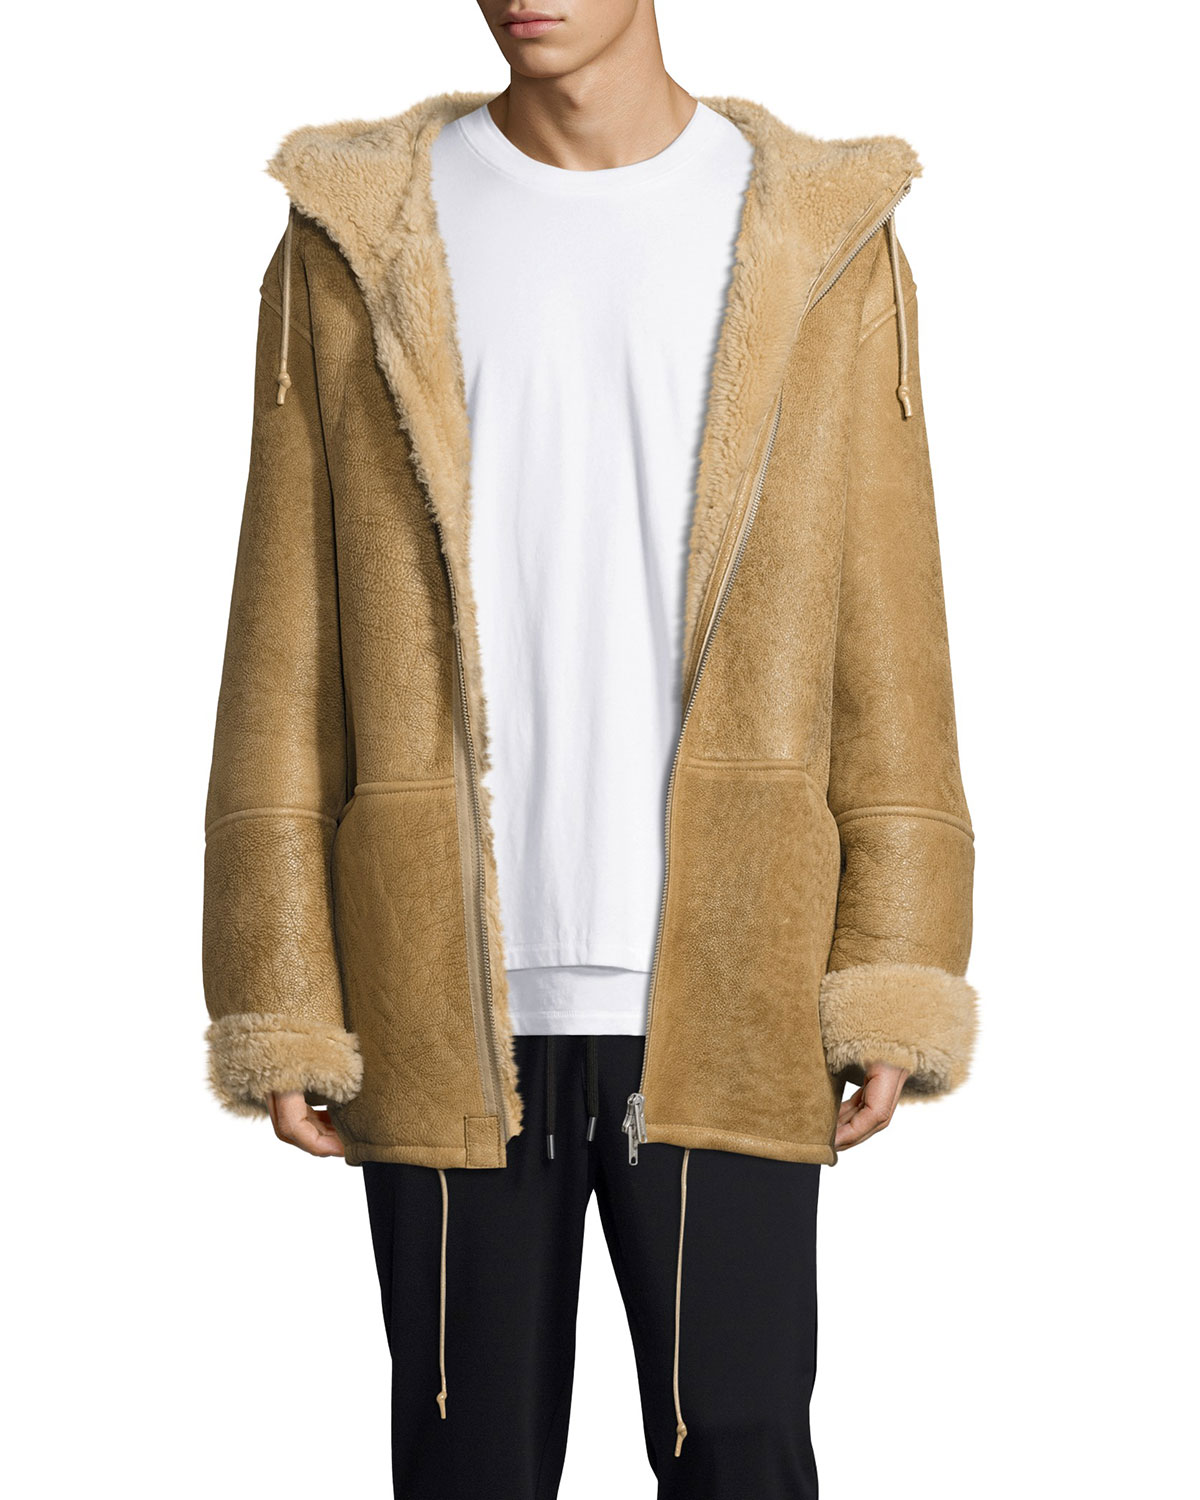 47be58abe Hooded Shearling Fur-Lined Jacket, Beige